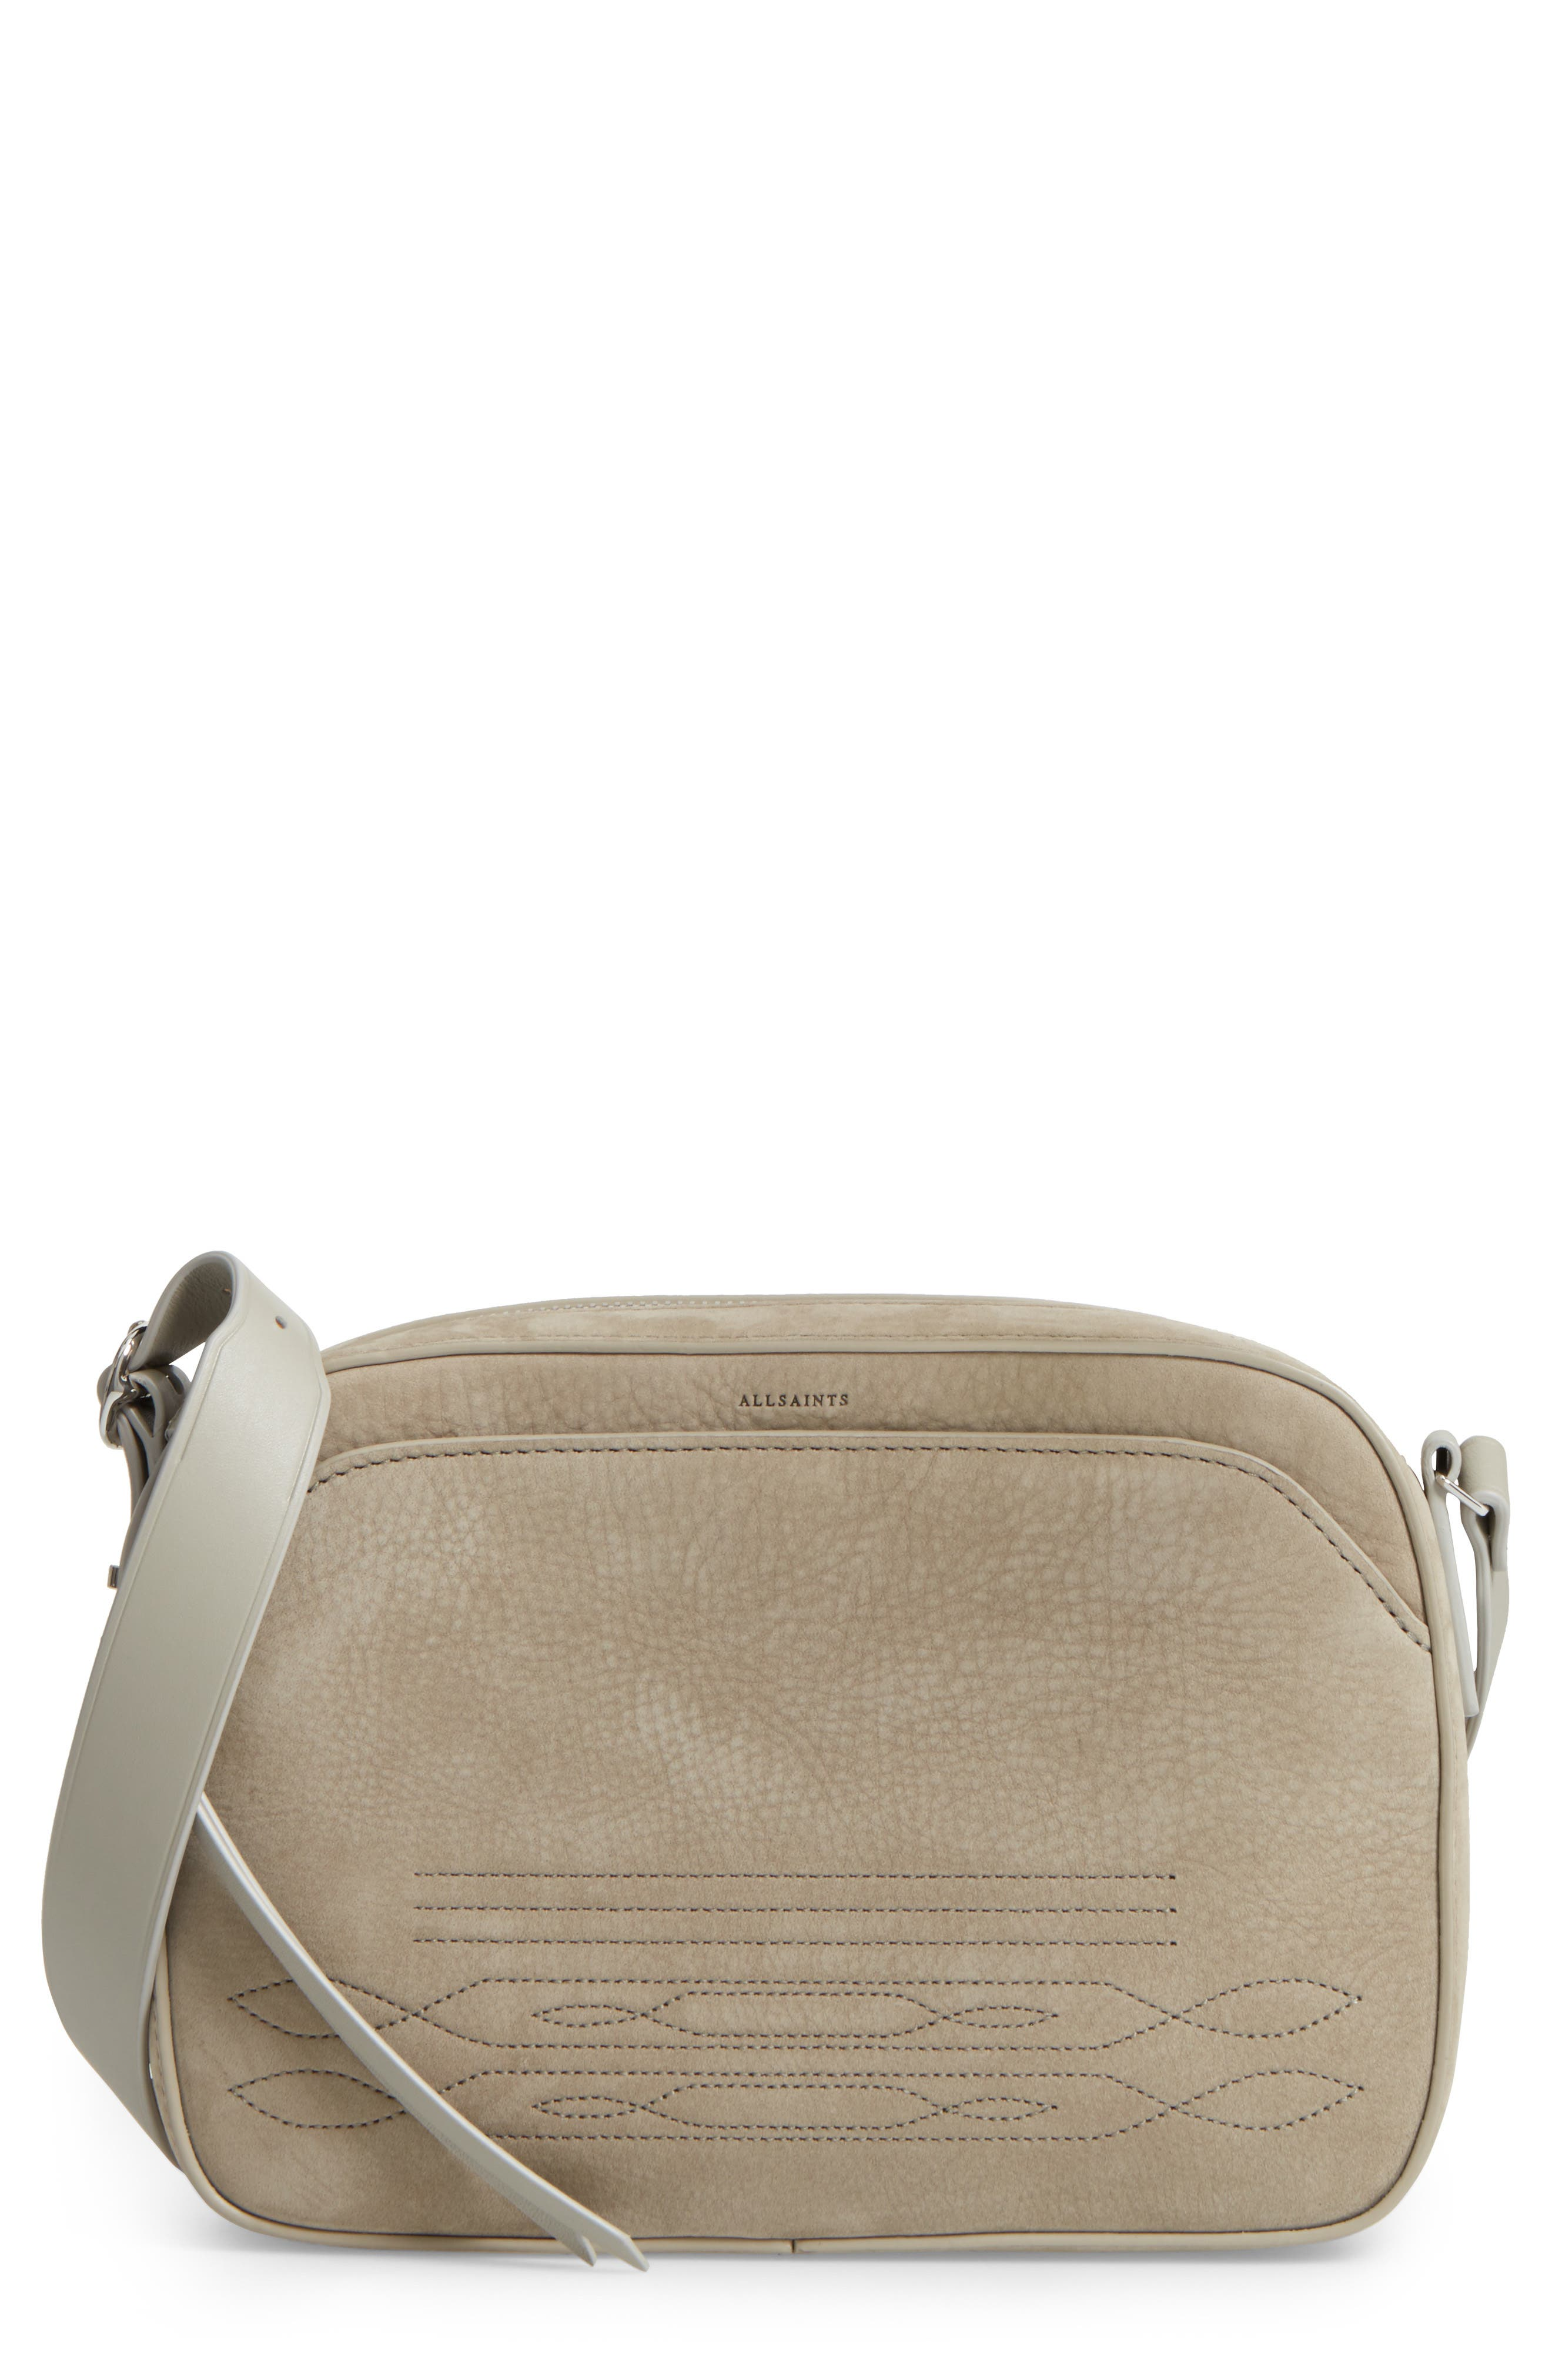 ALLSAINTS Cooper Nubuck Leather Shoulder Bag